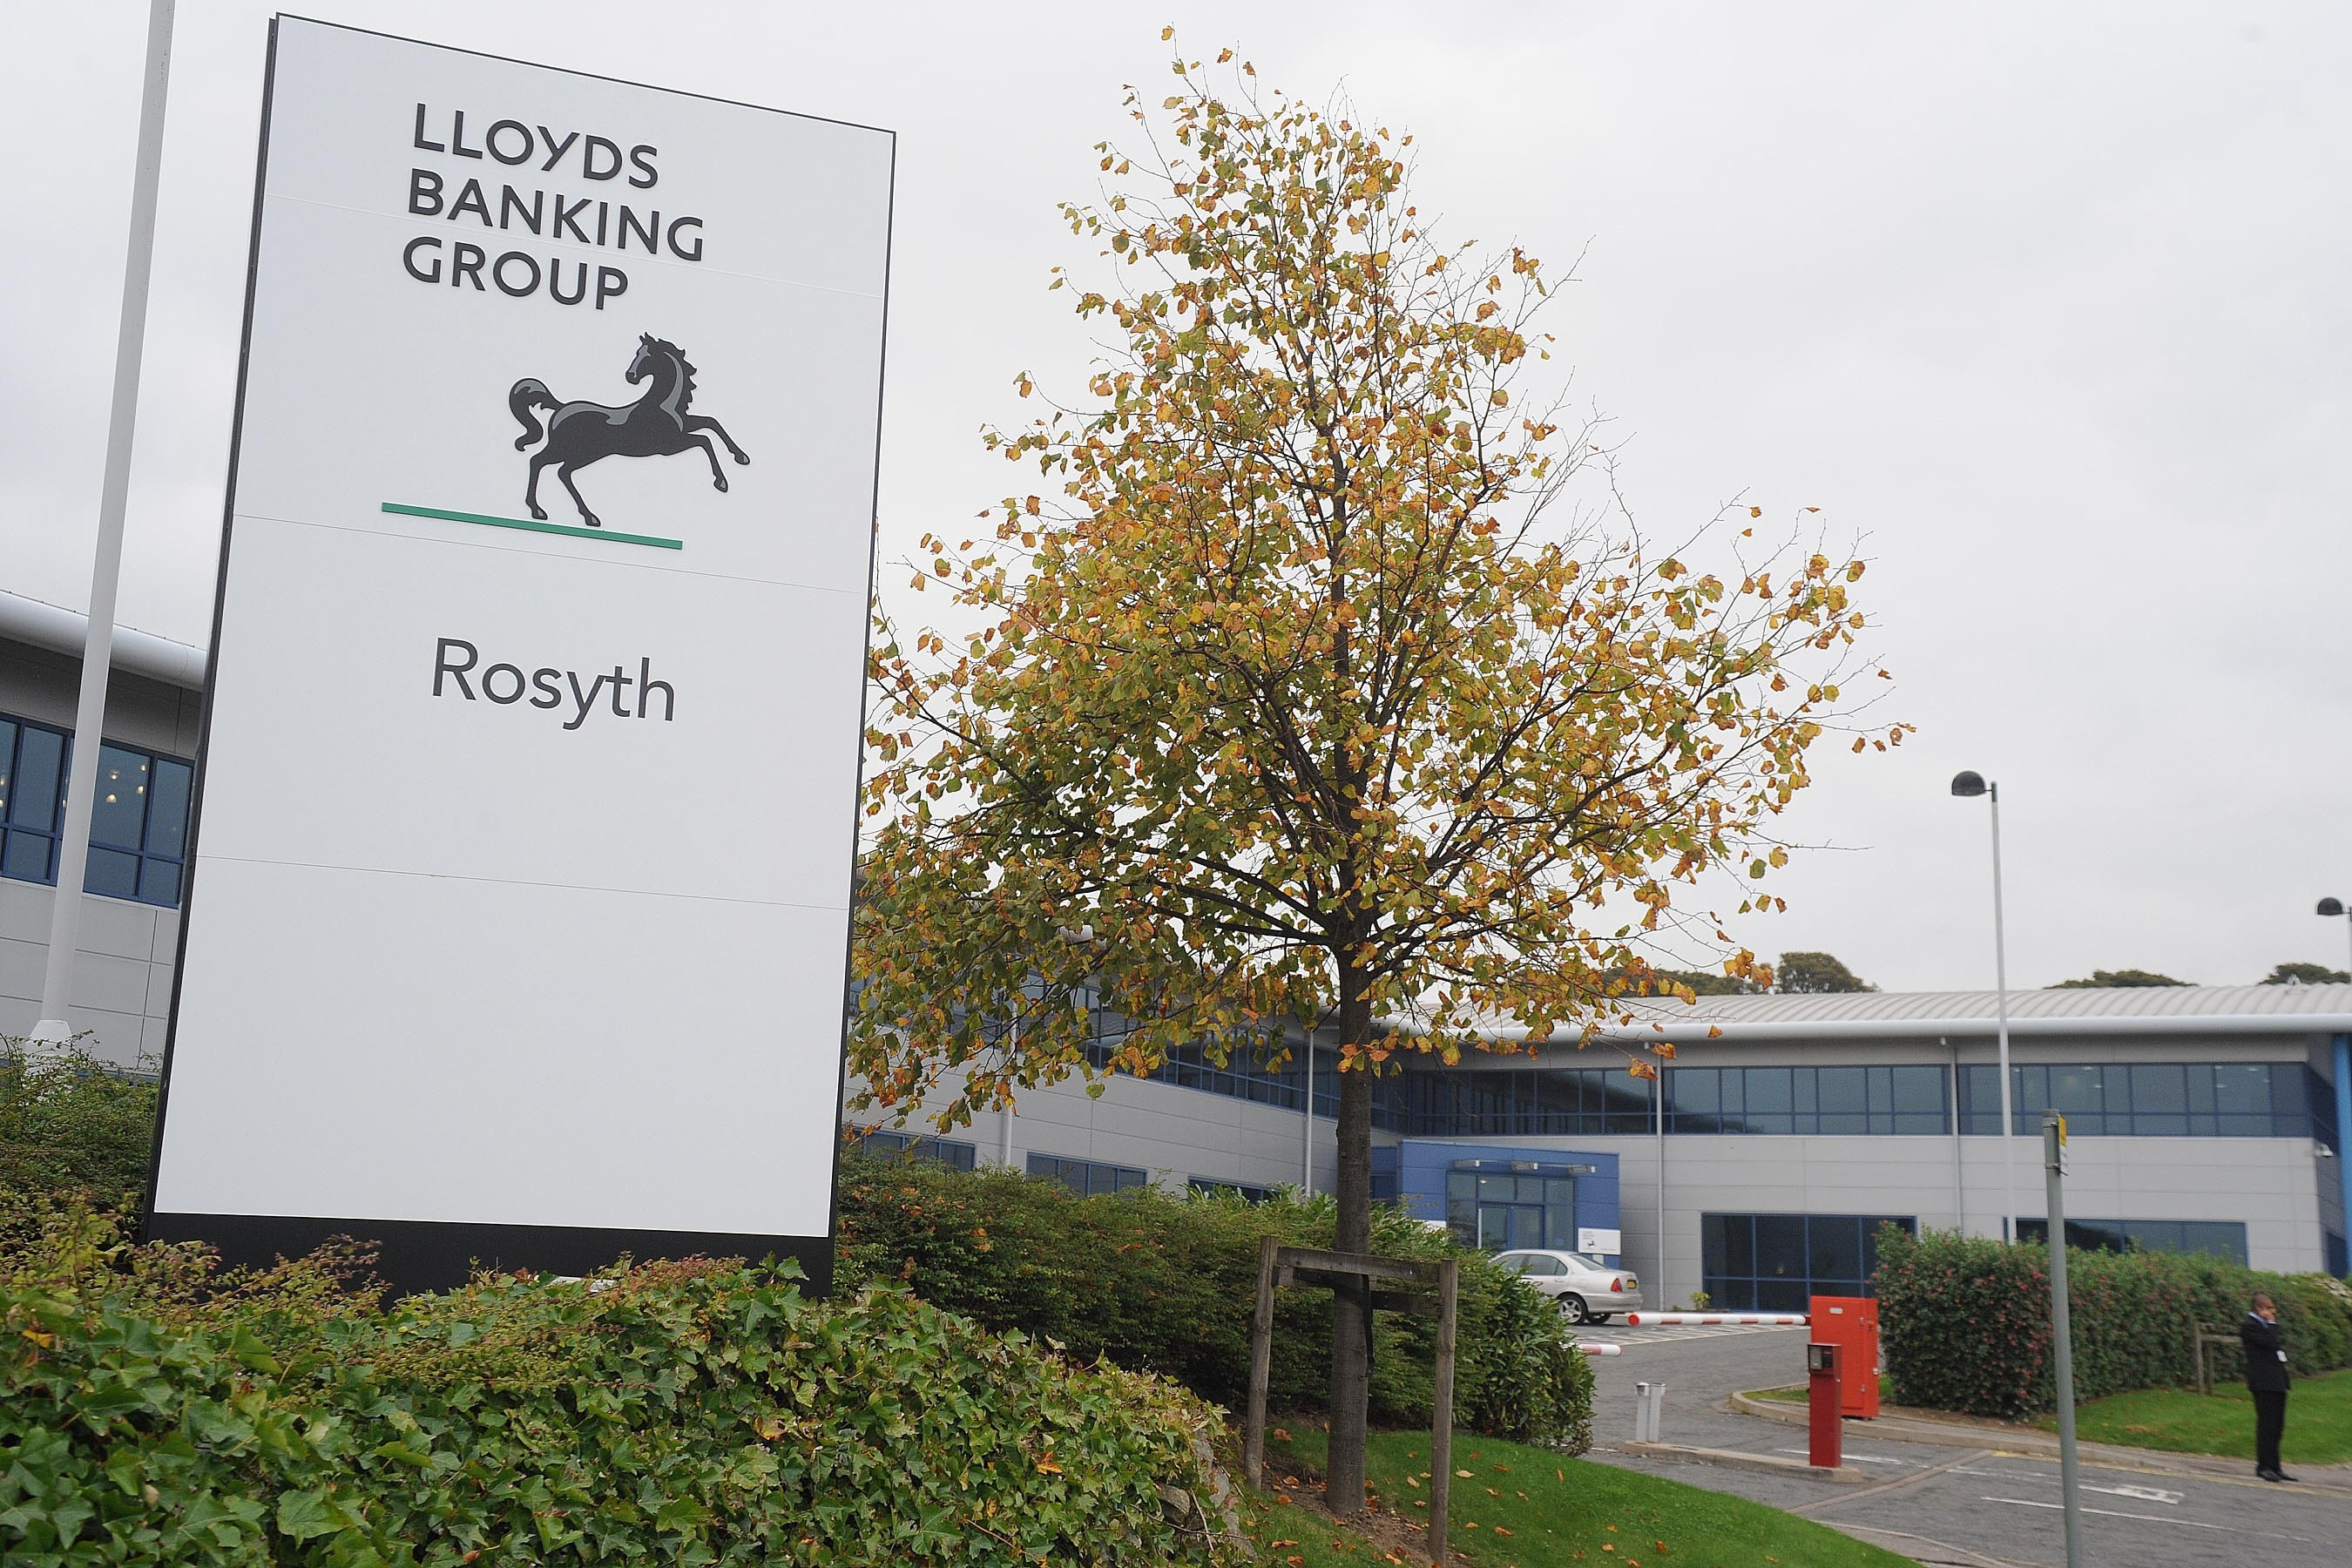 LLoyds Banking Group's Rosyth facility